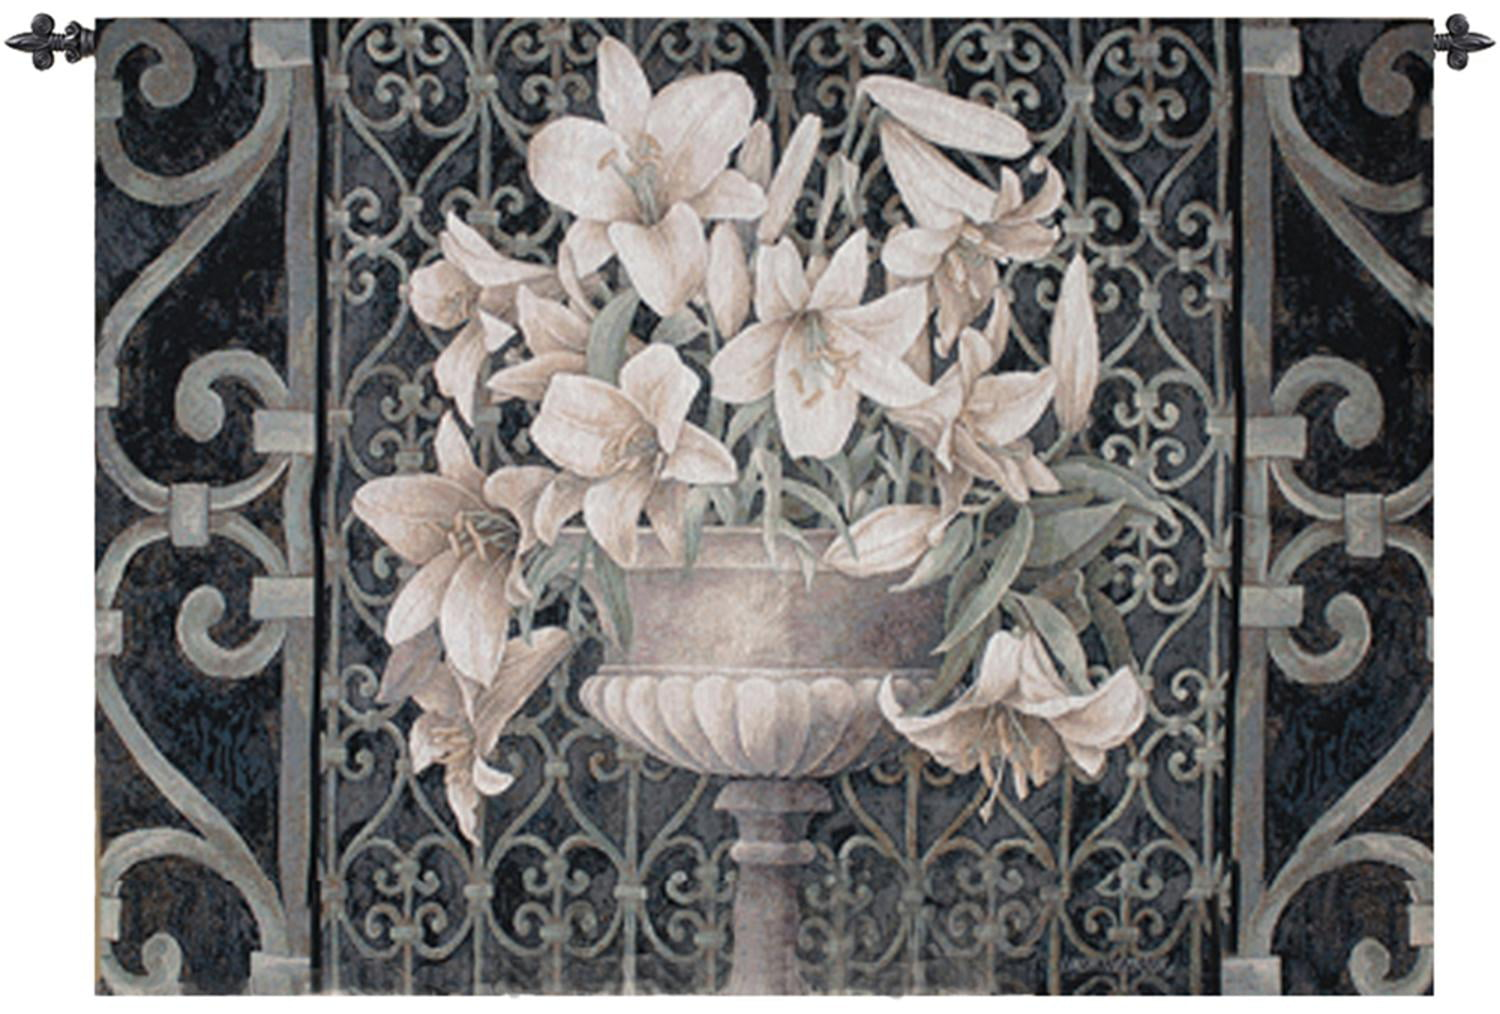 "Lis dans Urne Ornement Iron Gate Cotton Wall Art Hanging Tapisserie 35"" x 53"""